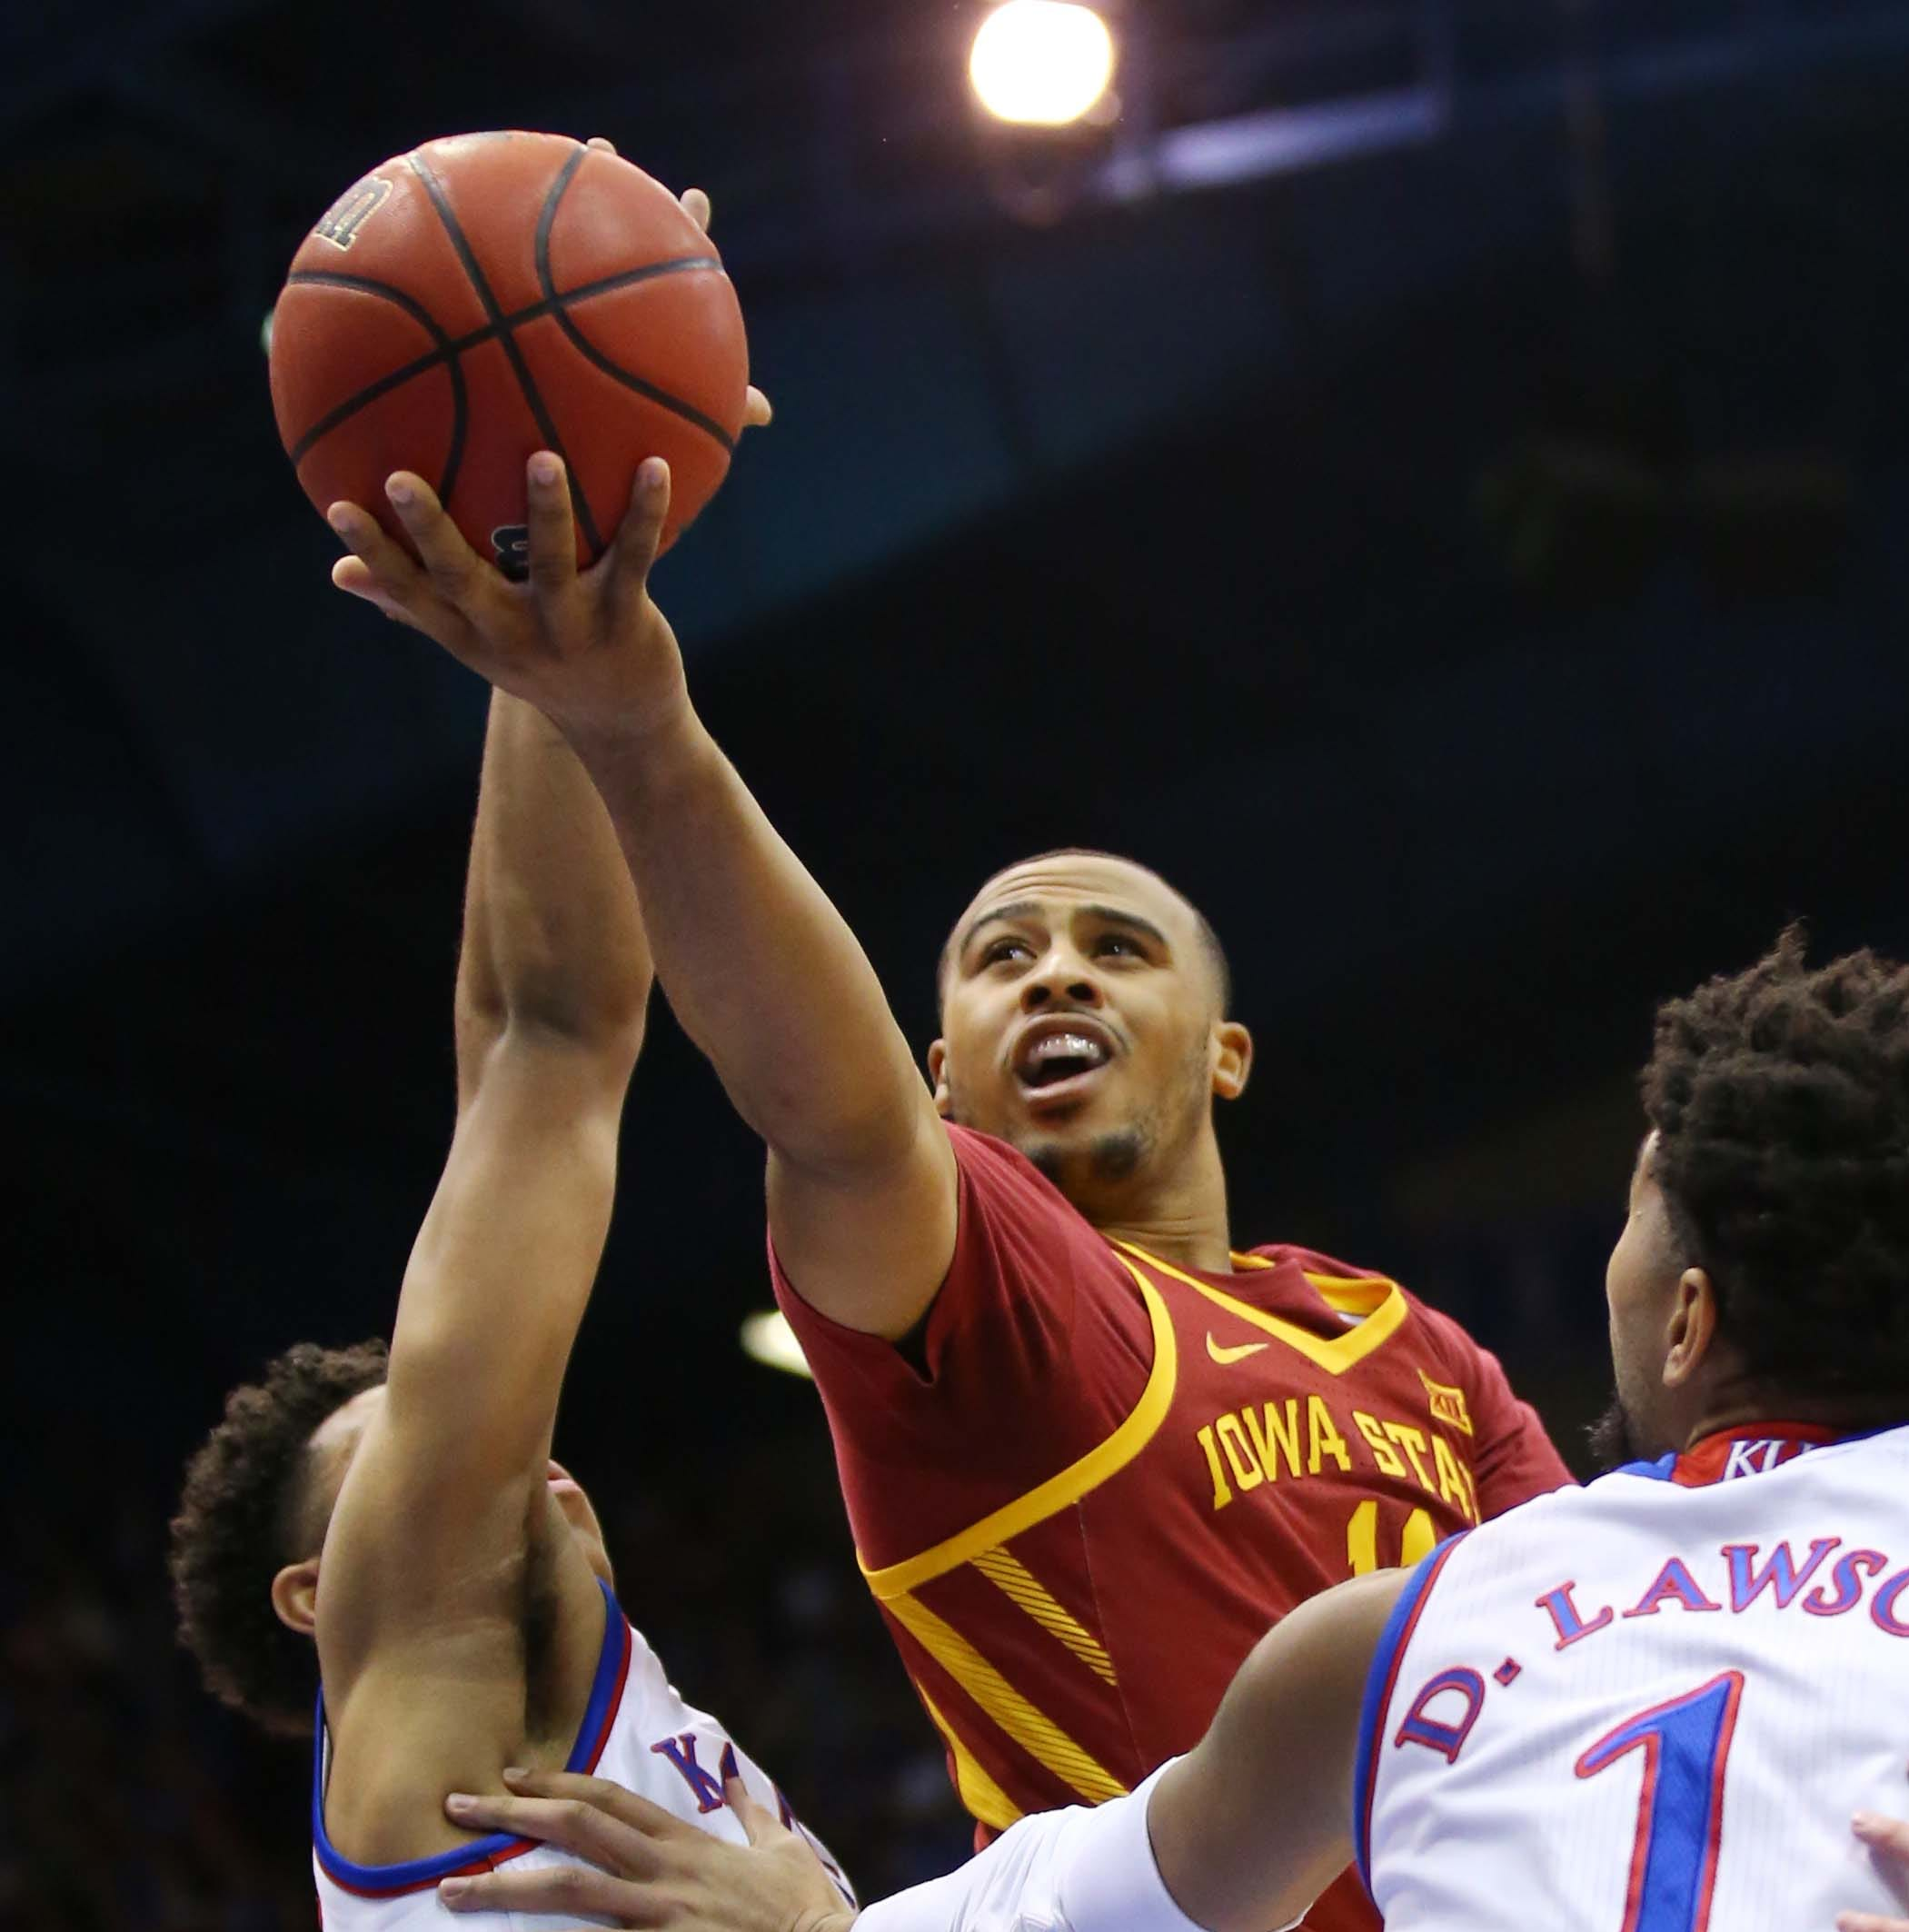 Iowa State fails to complete a season sweep of Kansas